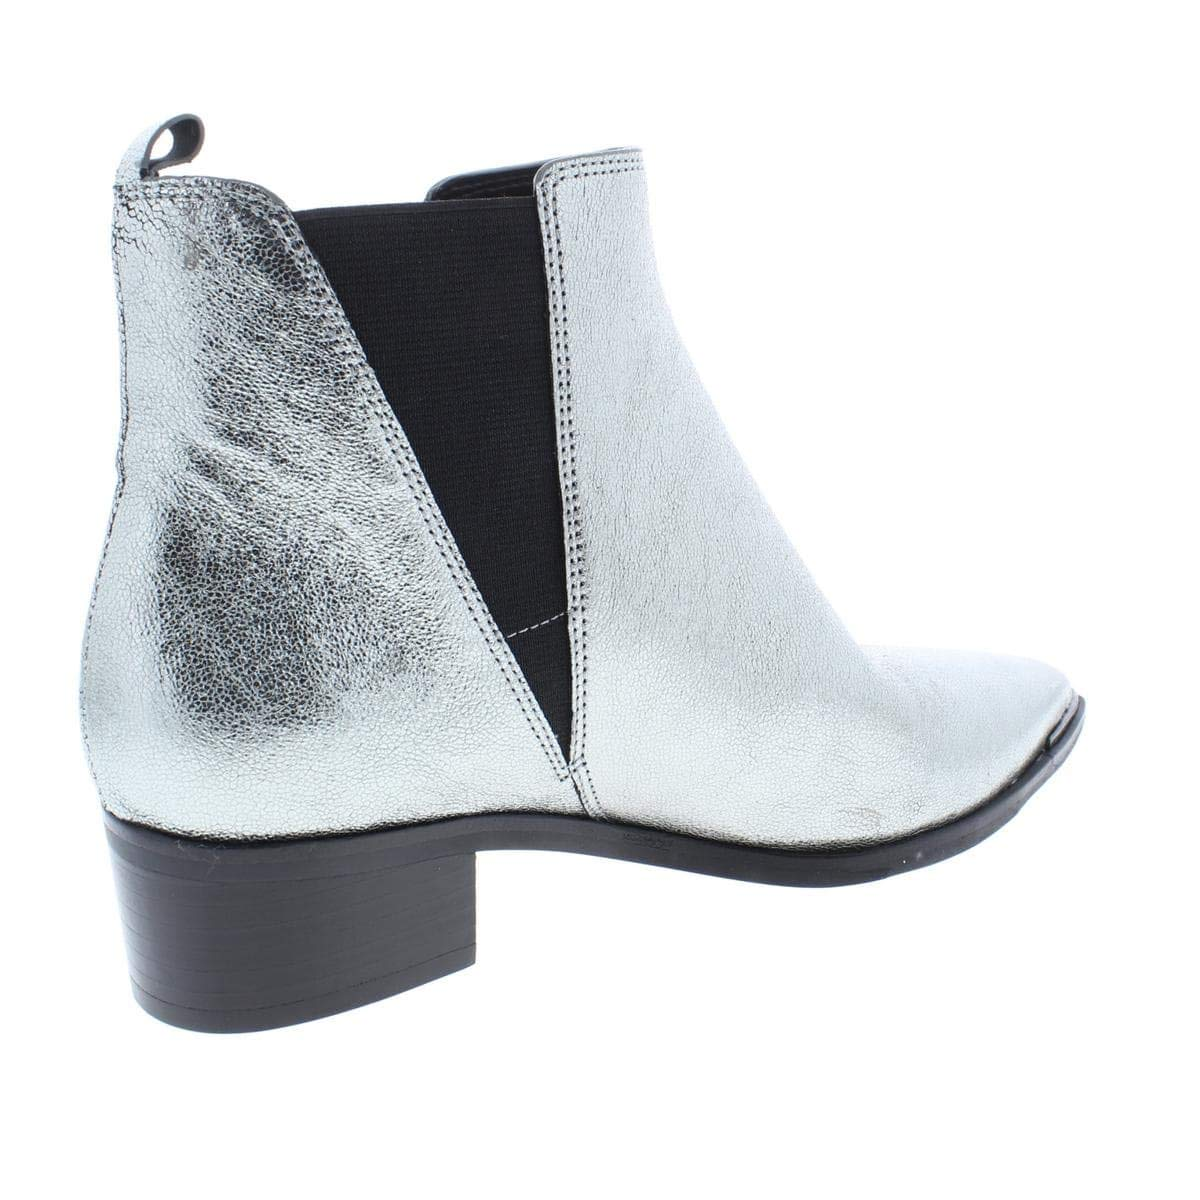 Pewter Multi Leather Marc Fisher LTD Women's Yale Ankle Bootie